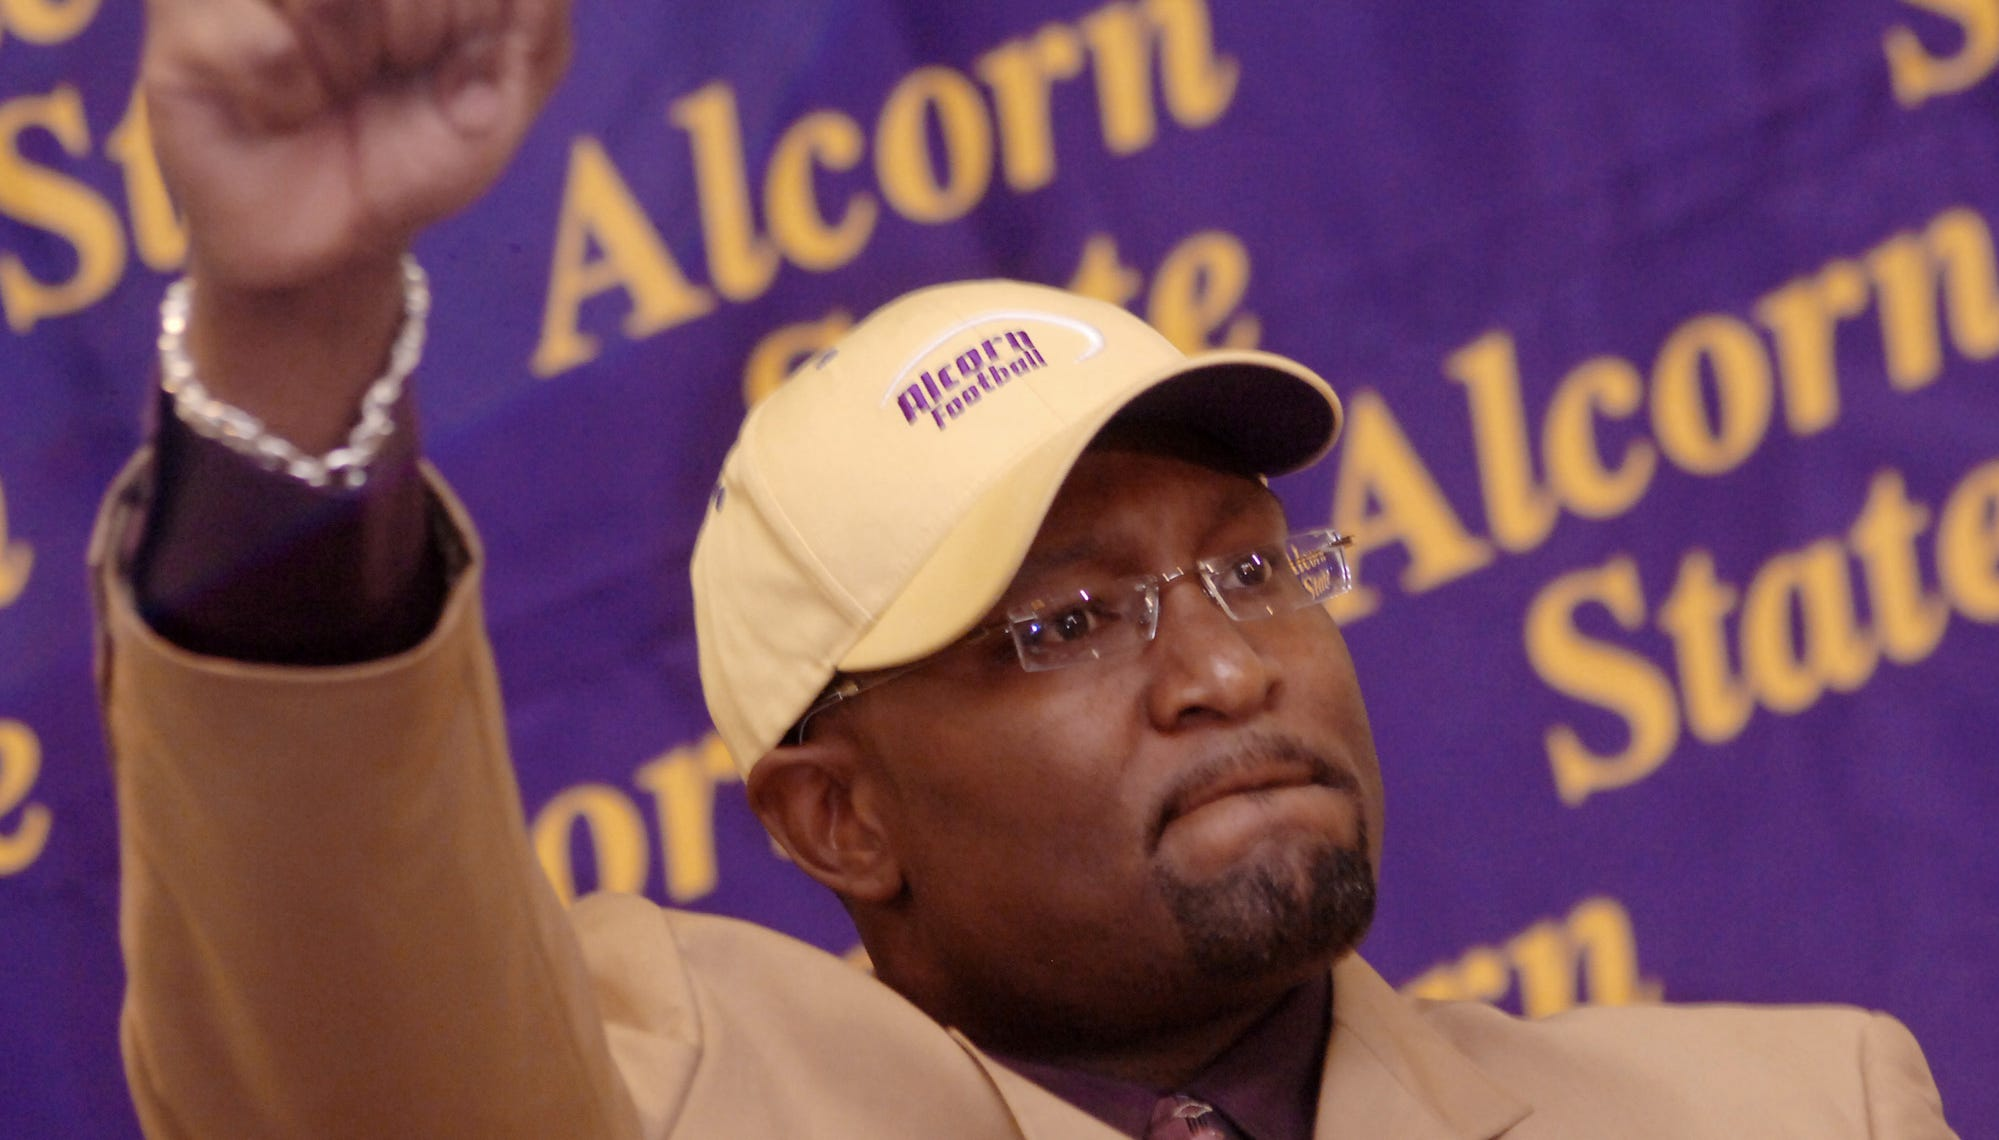 Nearly decade-old lawsuit reinstated against Alcorn State University over coach firing